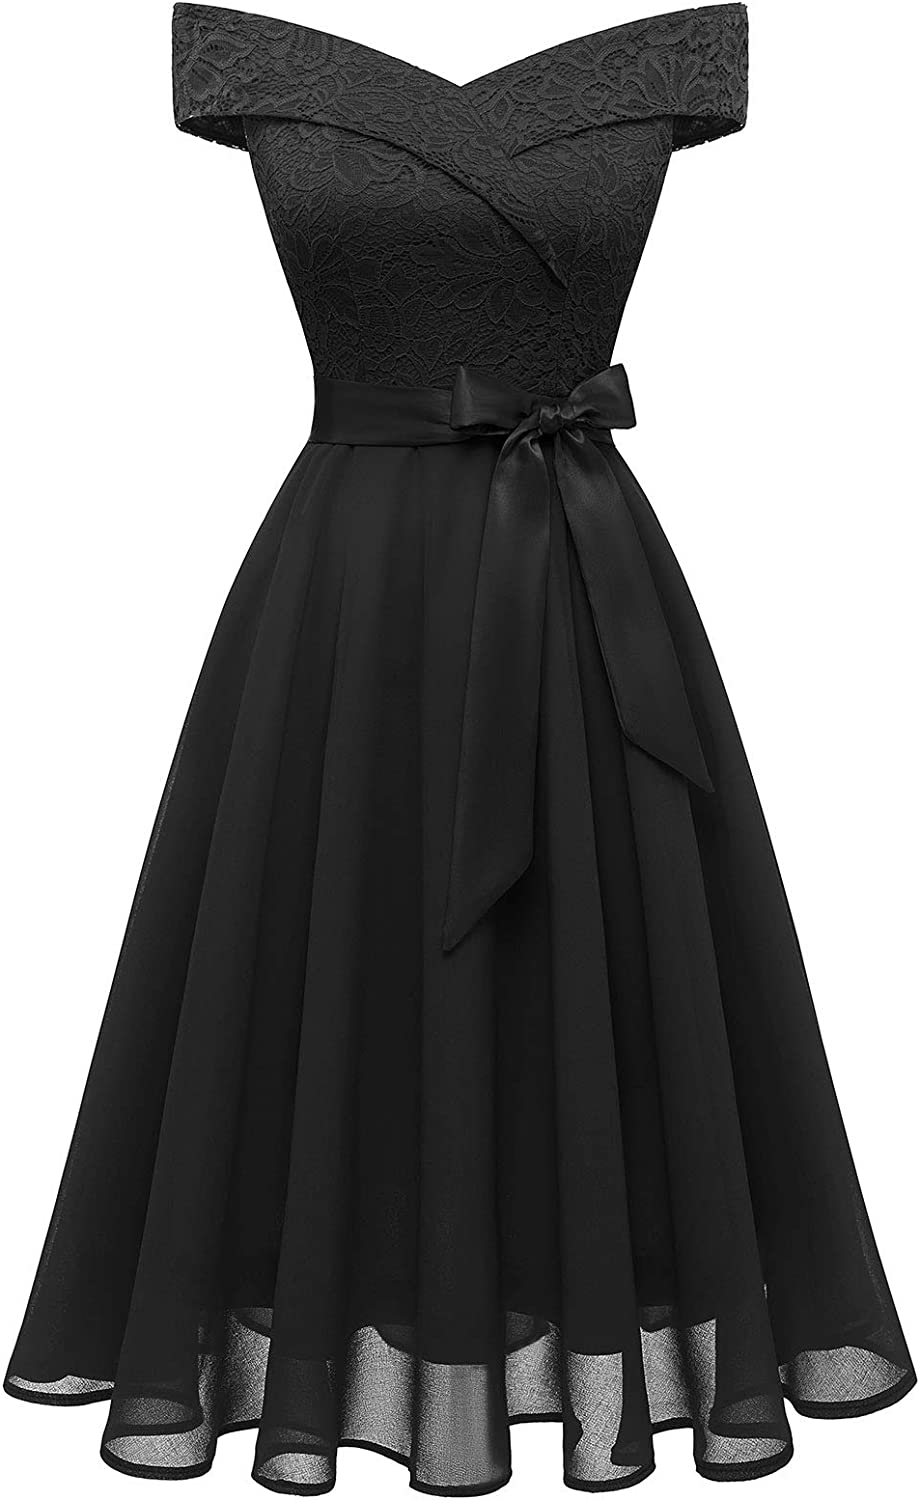 Bbonlinedress Women's Short Lace A-Line Vintage Dress Limited At the price of surprise price Bridesmaid